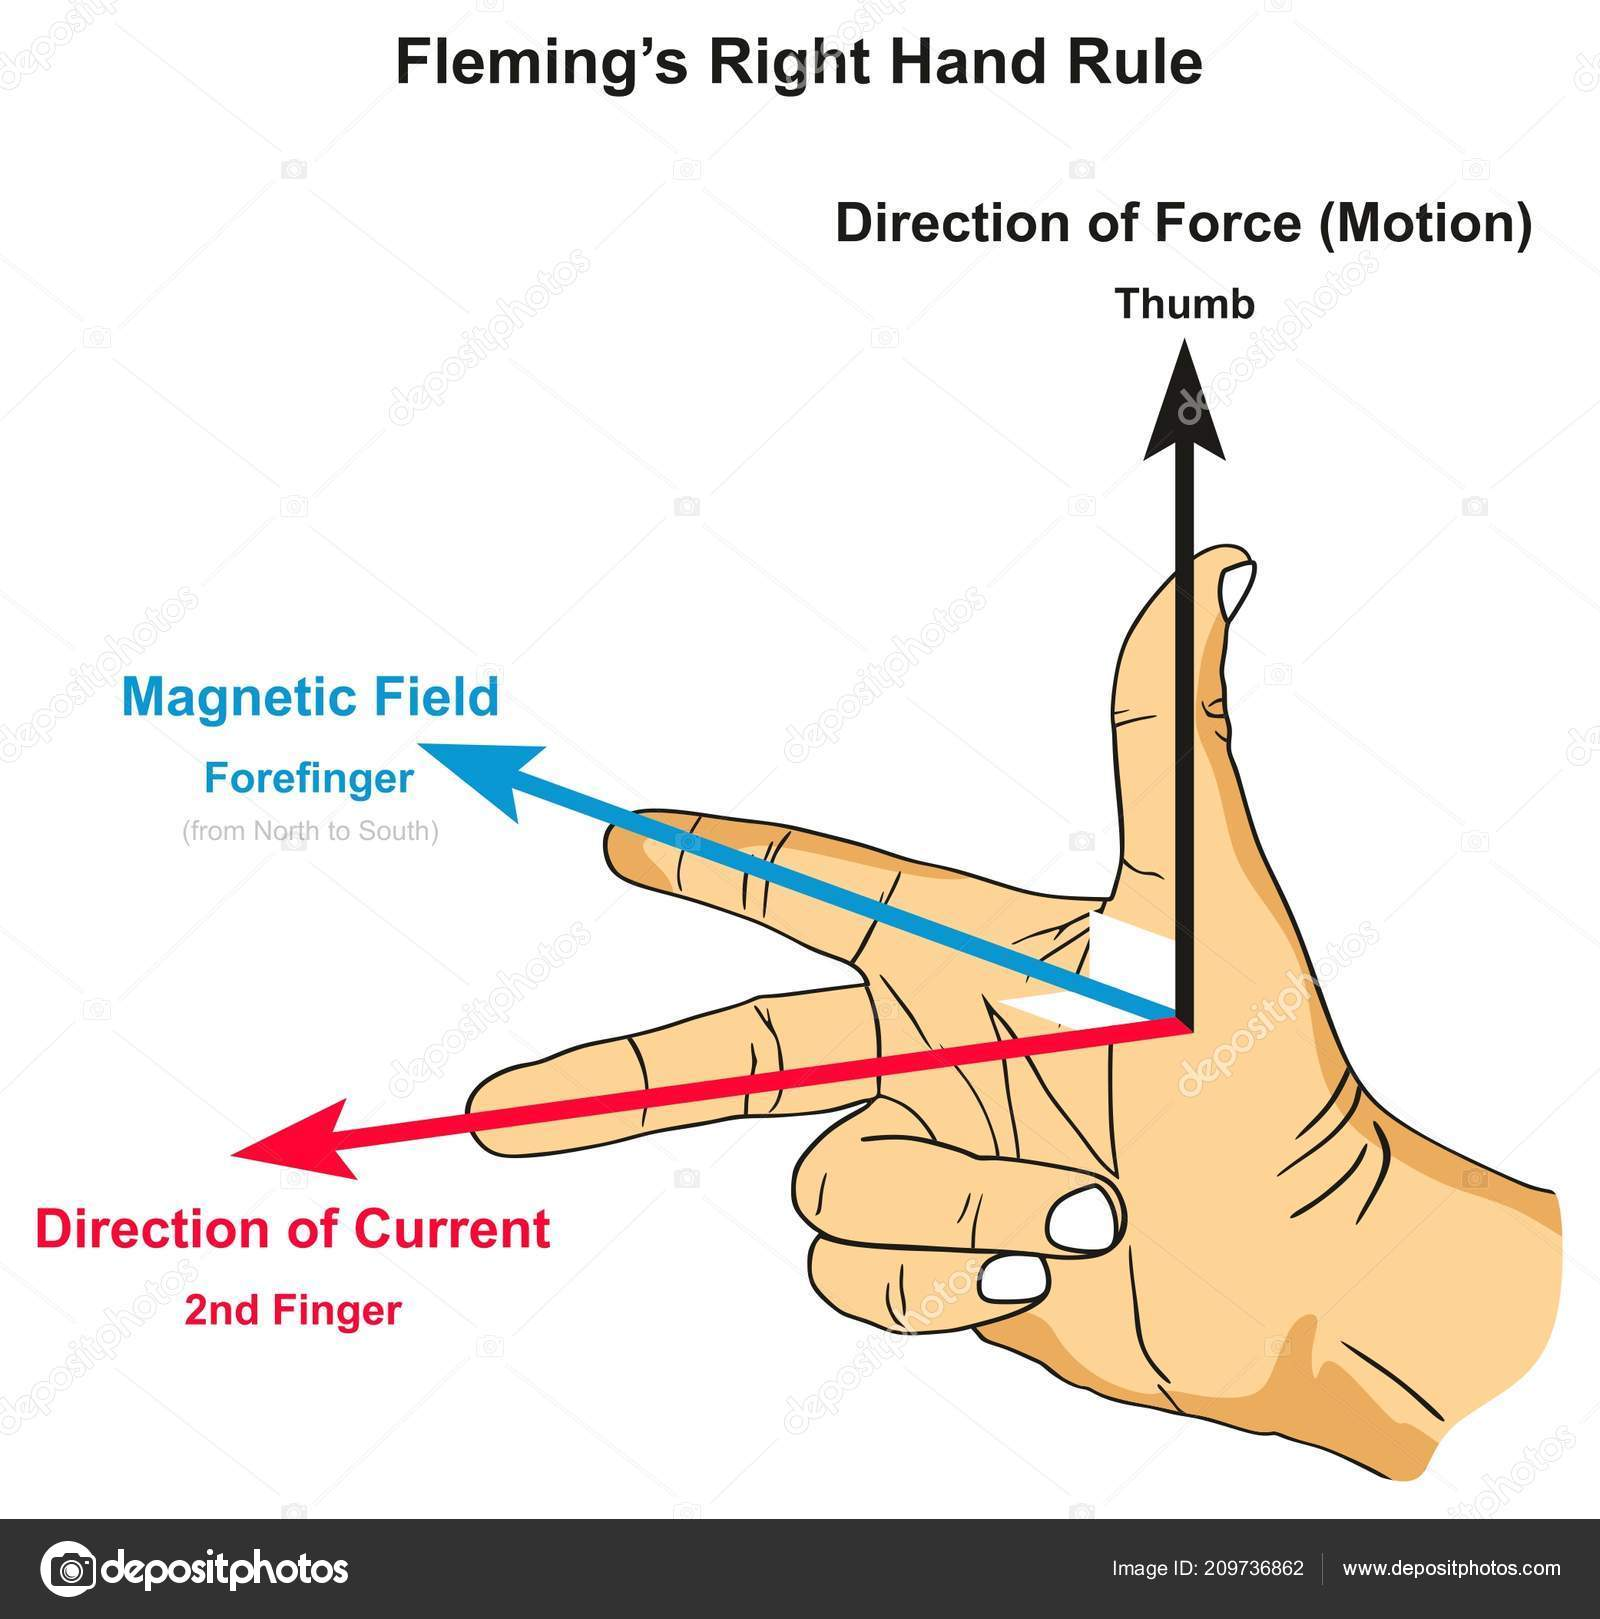 hight resolution of flemings right hand rule infographic diagram showing position thumb forefinger stock vector